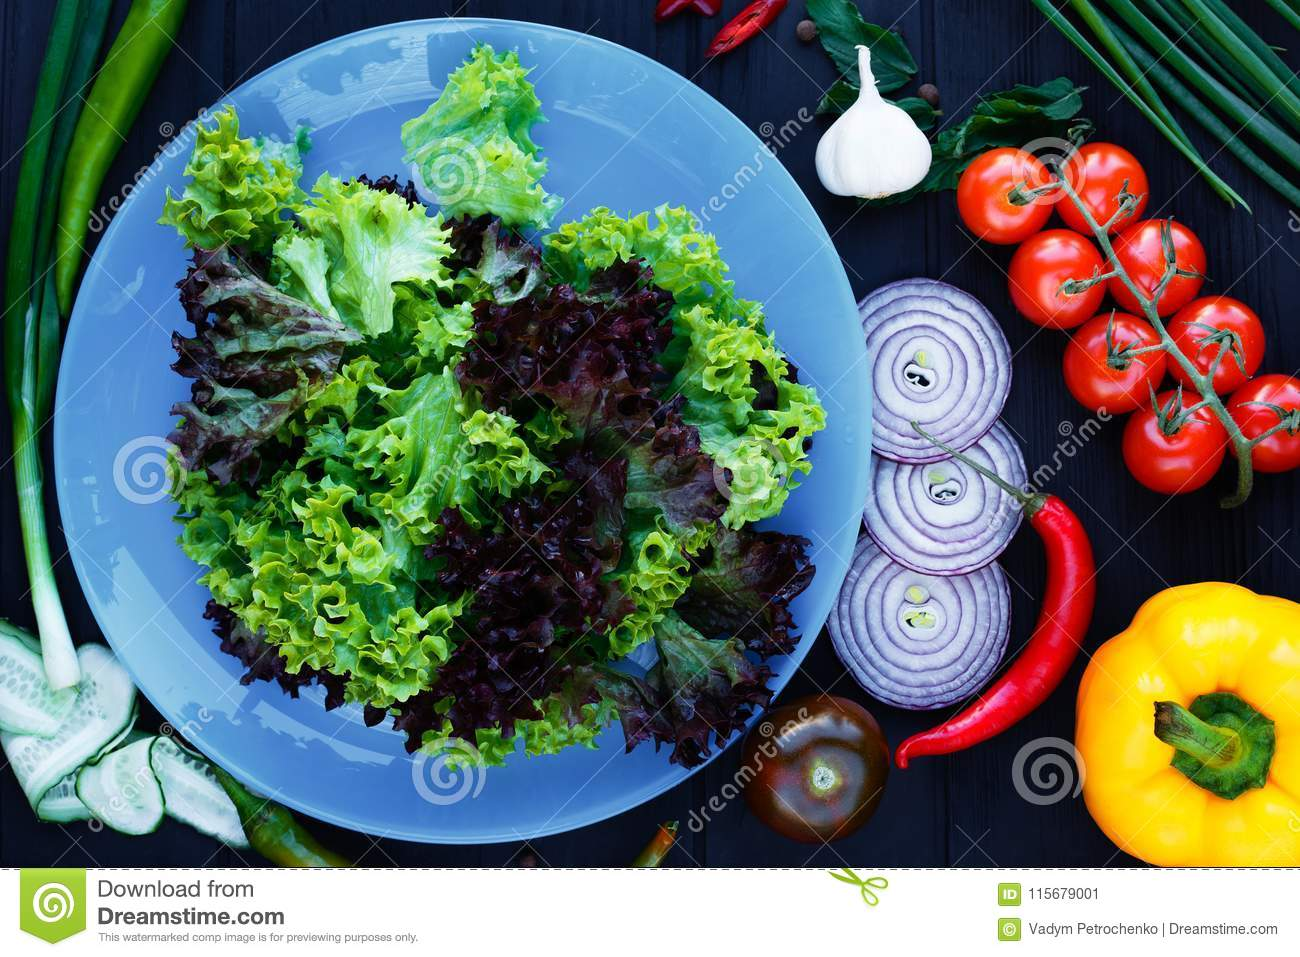 Lettuce Salad On Blue Plate, Decorated With Various Tomatoes